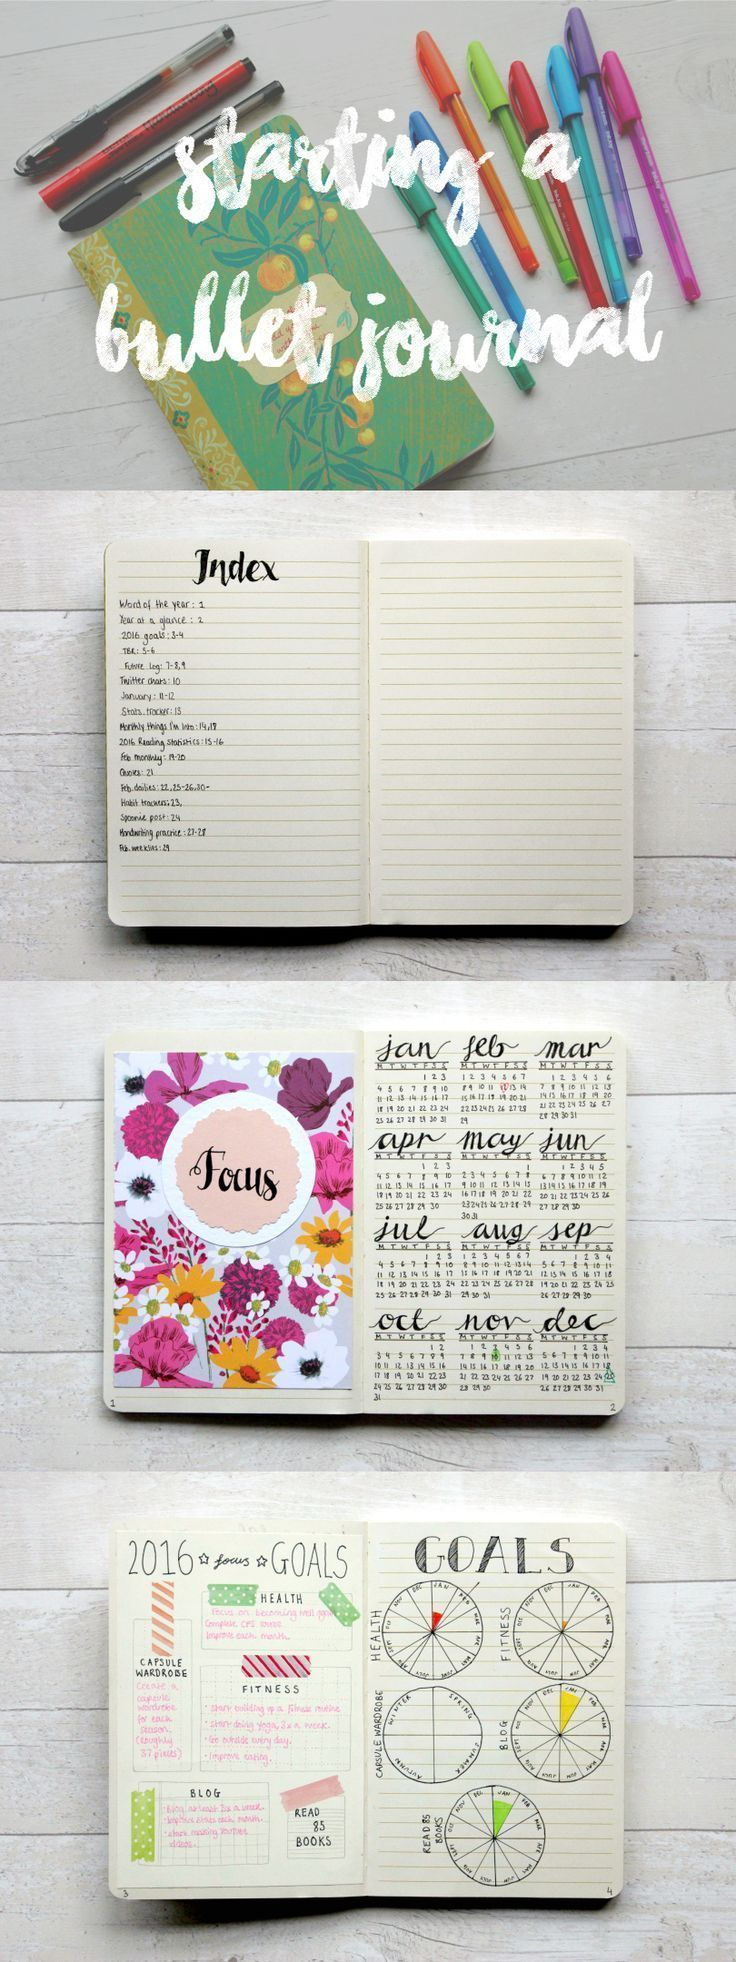 Love the idea of bullet journals to keep track of goals to do diy school supplies start a bullet journal easy crafts and do it yourself ideas for back to school pencils notebooks backpacks and fun gear for solutioingenieria Choice Image